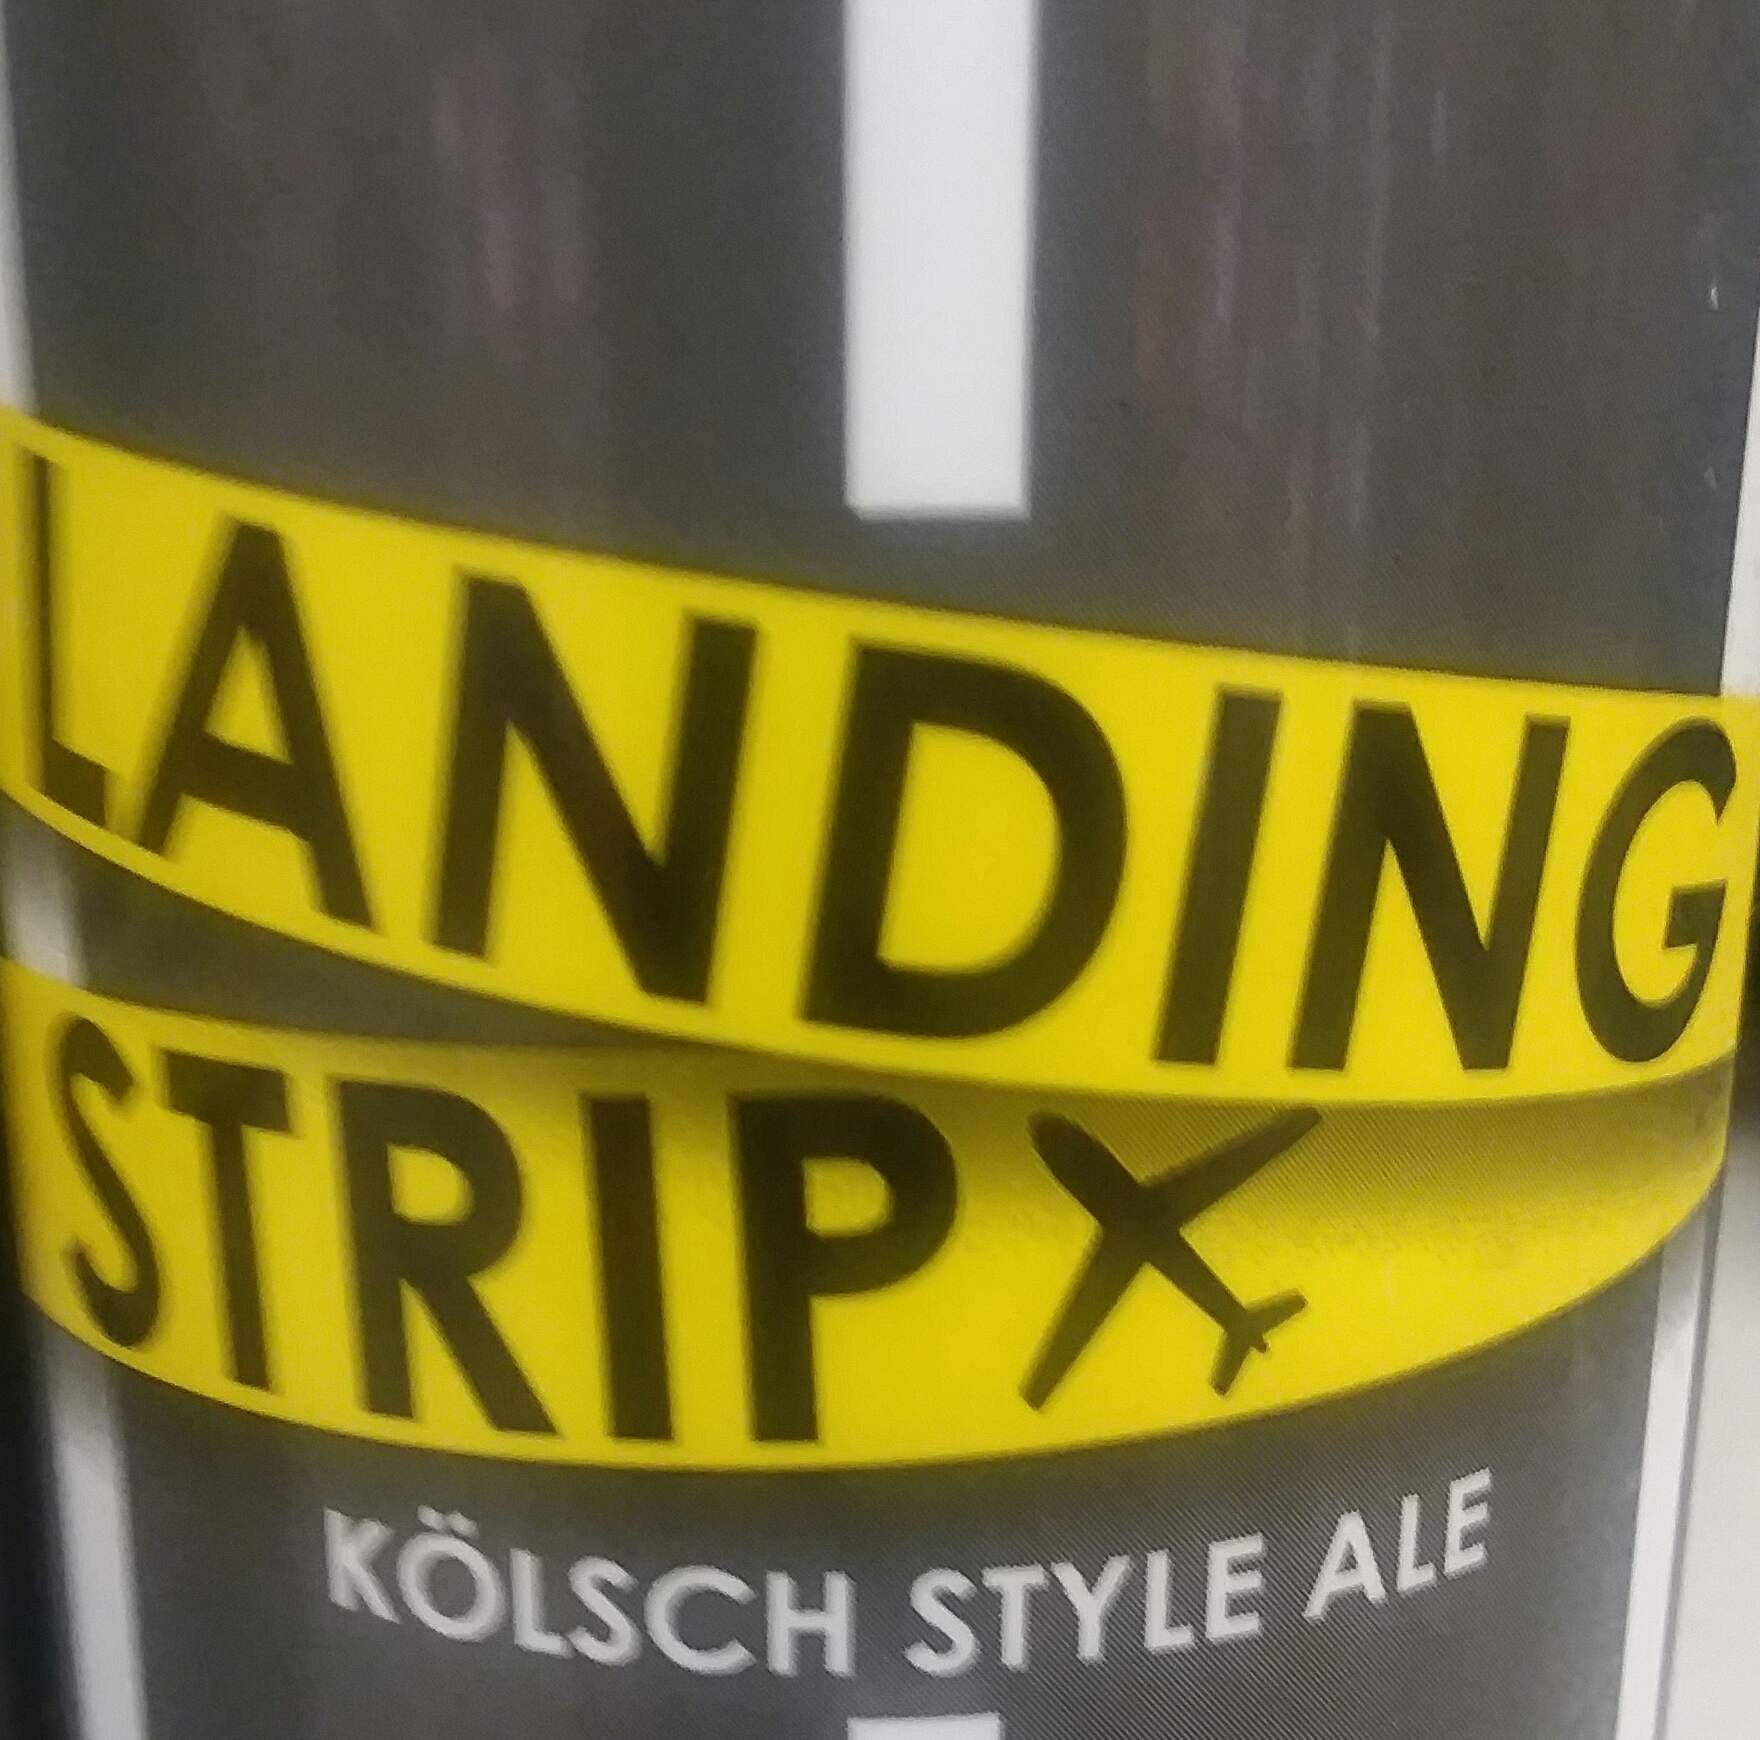 Cross Keys Landing Strip beer Label Full Size